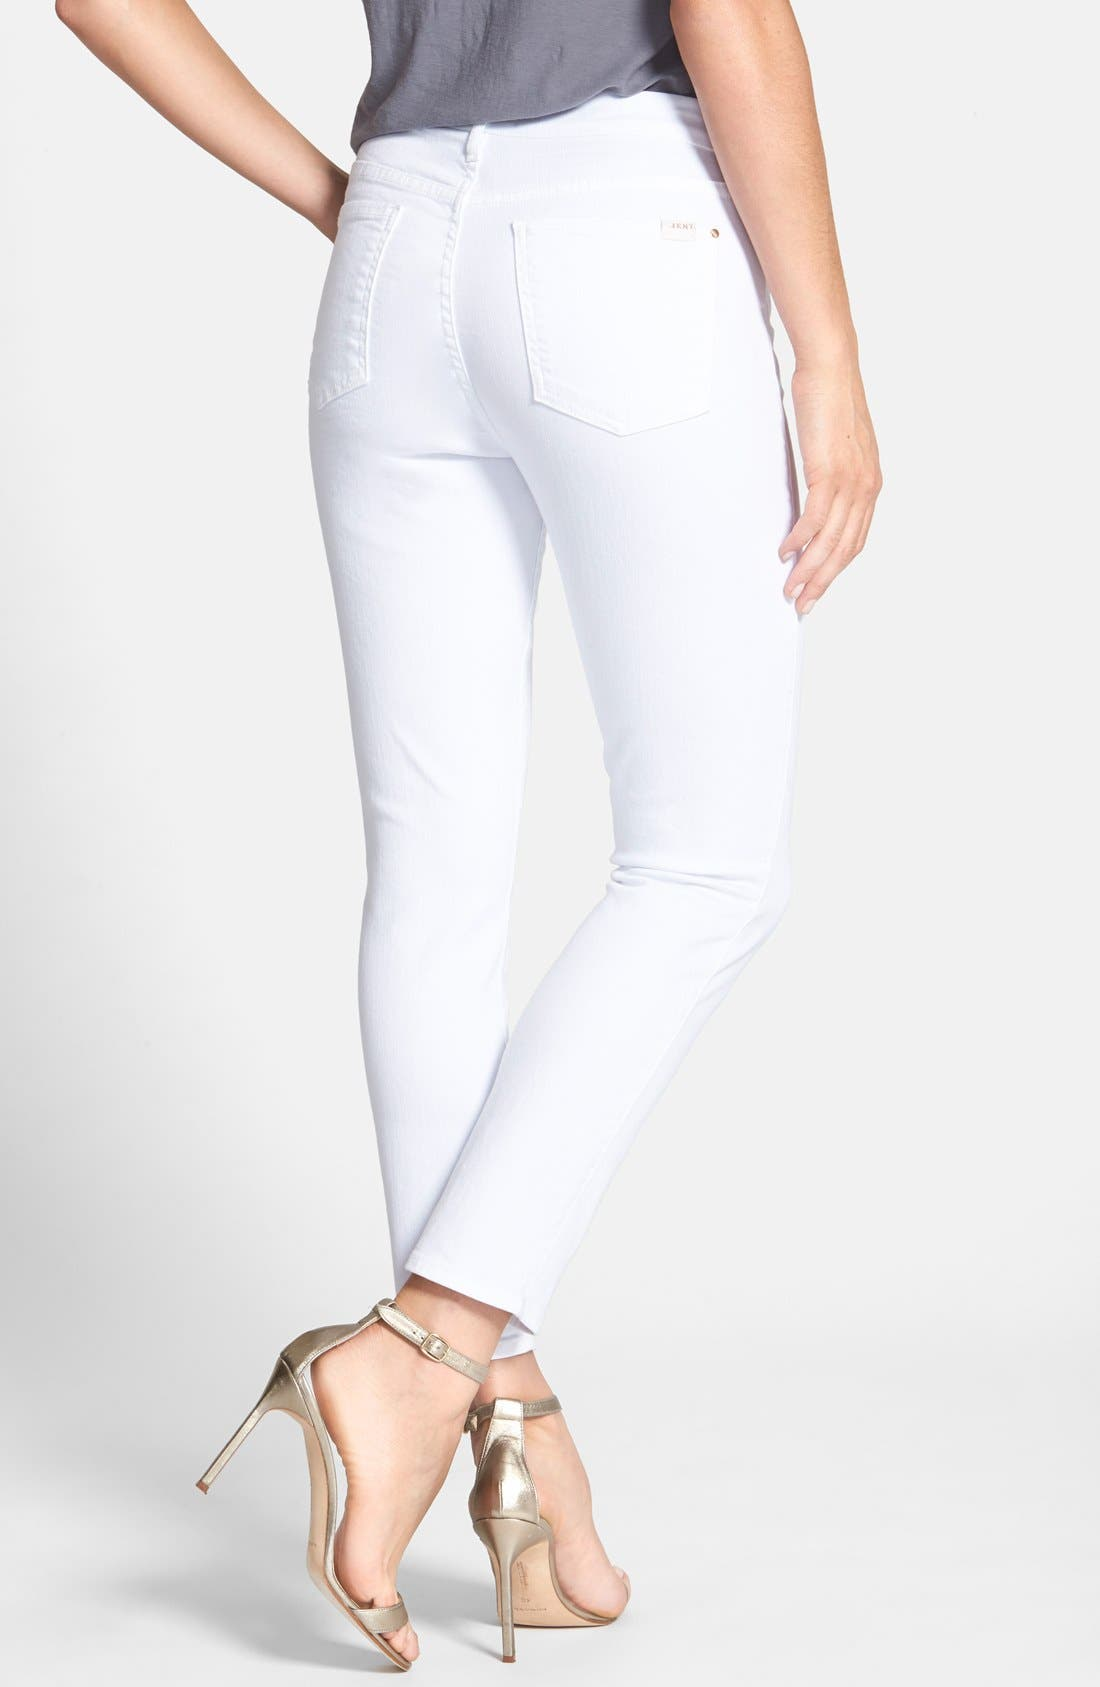 JEN7 BY 7 FOR ALL MANKIND, Stretch Crop Skinny Jeans, Alternate thumbnail 2, color, WHITE DENIM